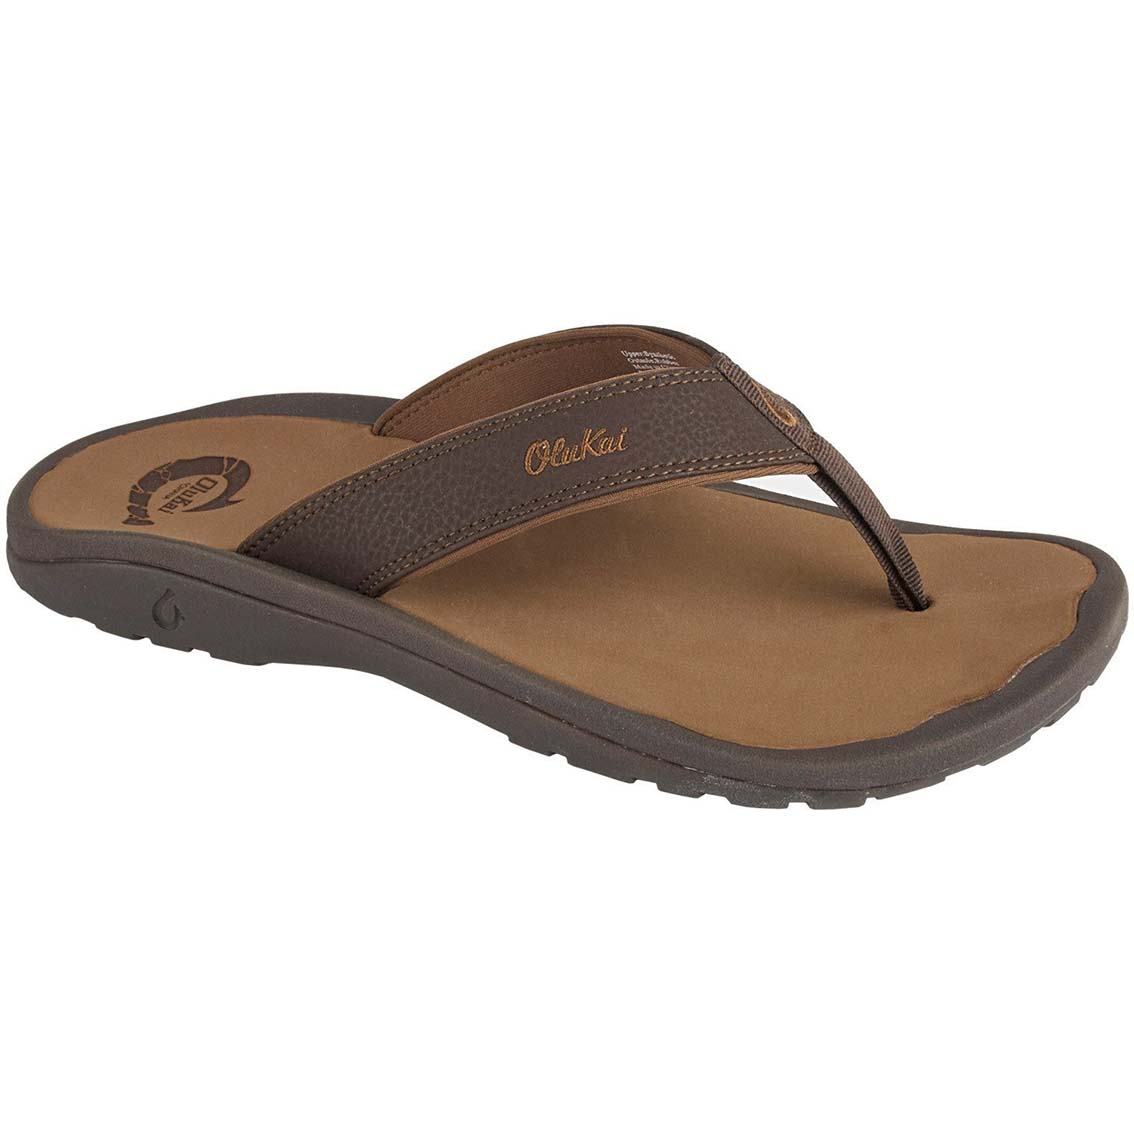 6cc7640fed OluKai -  Ohana Men s - Footwear-Men s-Sandals   Living Simply ...